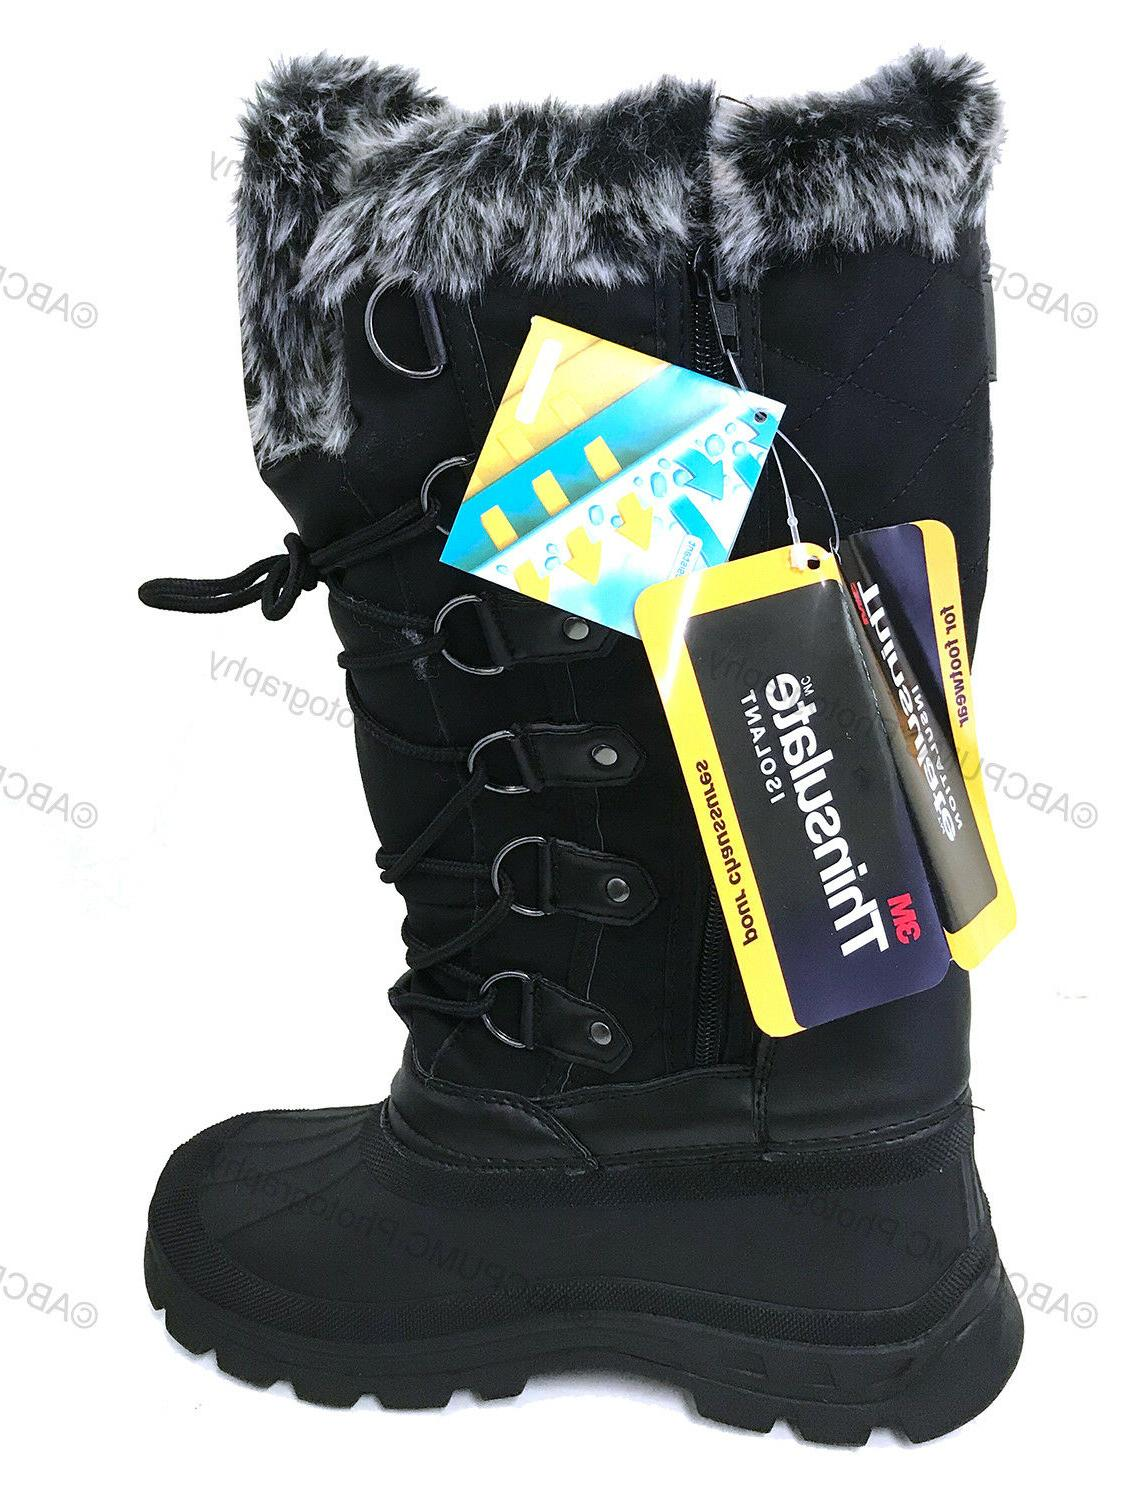 Brand New Women's Winter Boots Warm Insulated